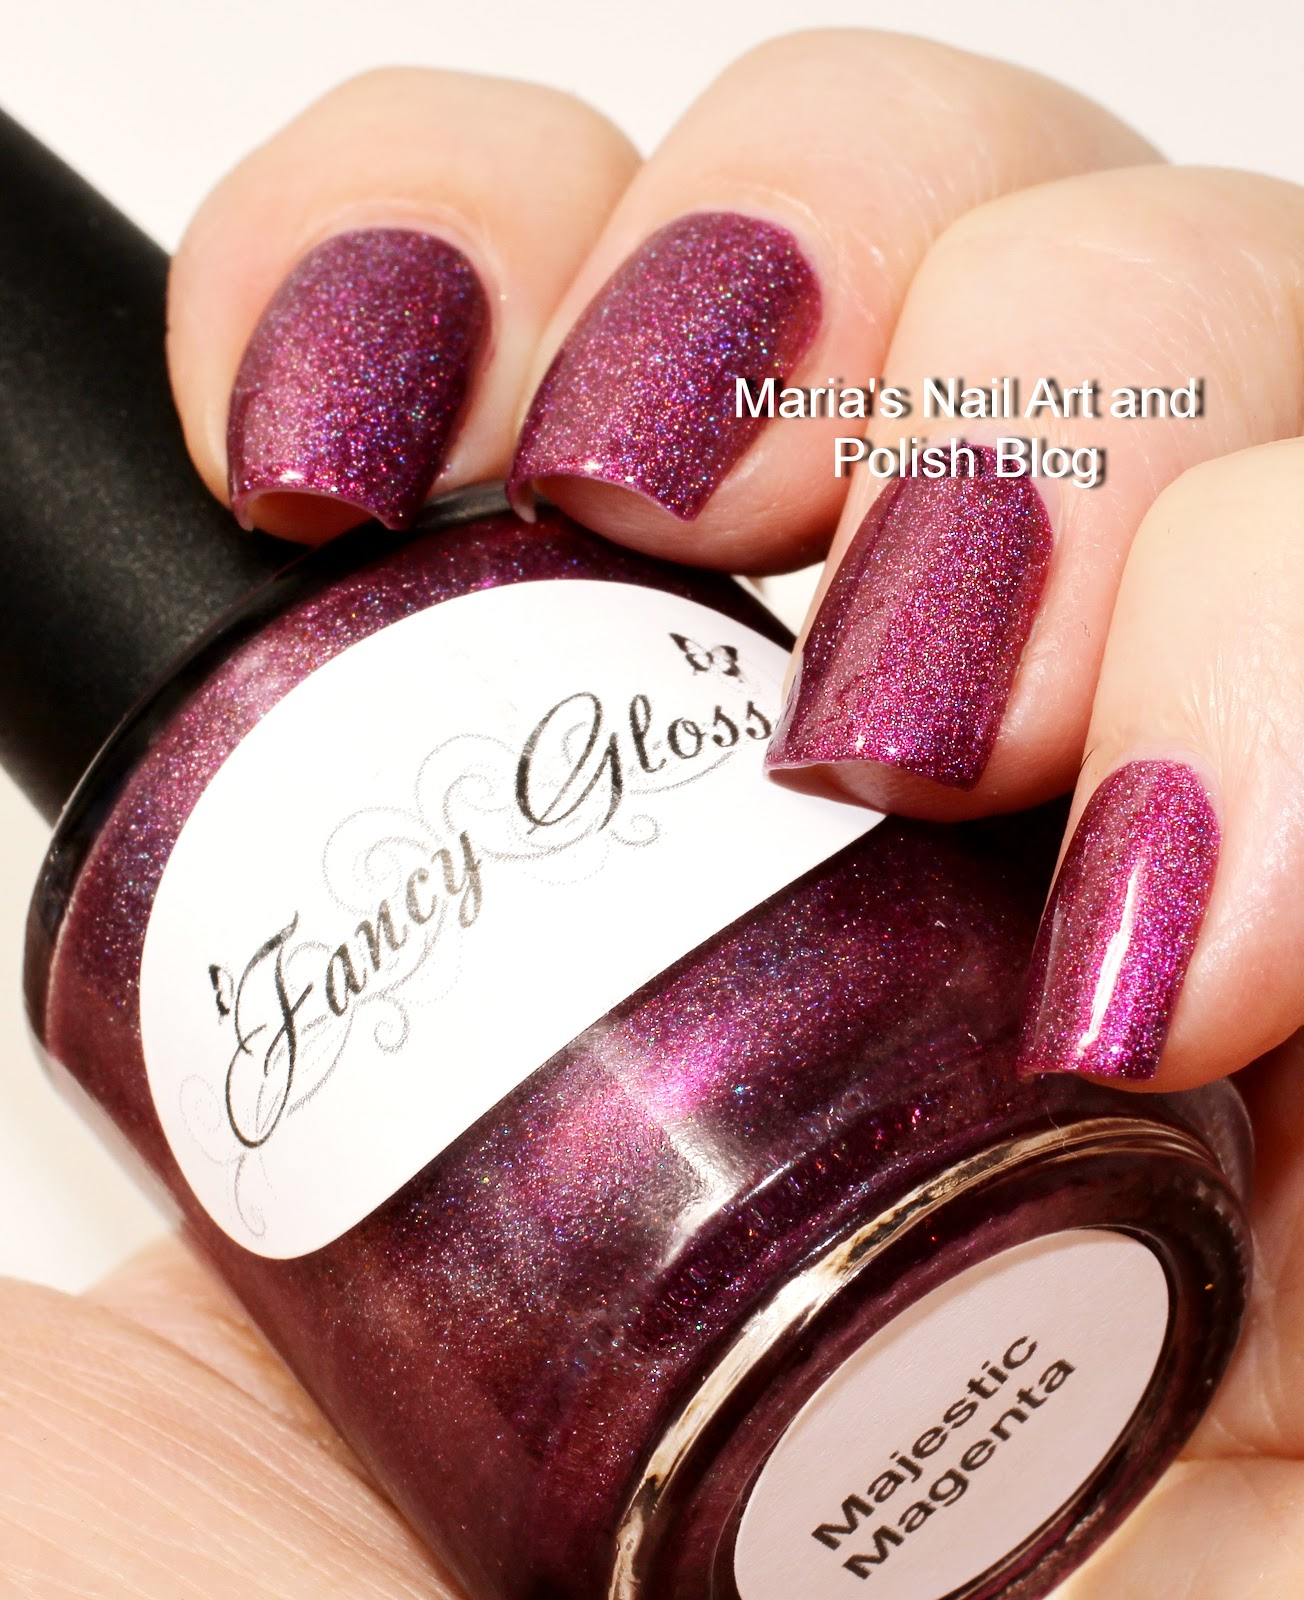 Marias Nail Art and Polish Blog: Fancy Gloss Majestic Magenta swatches